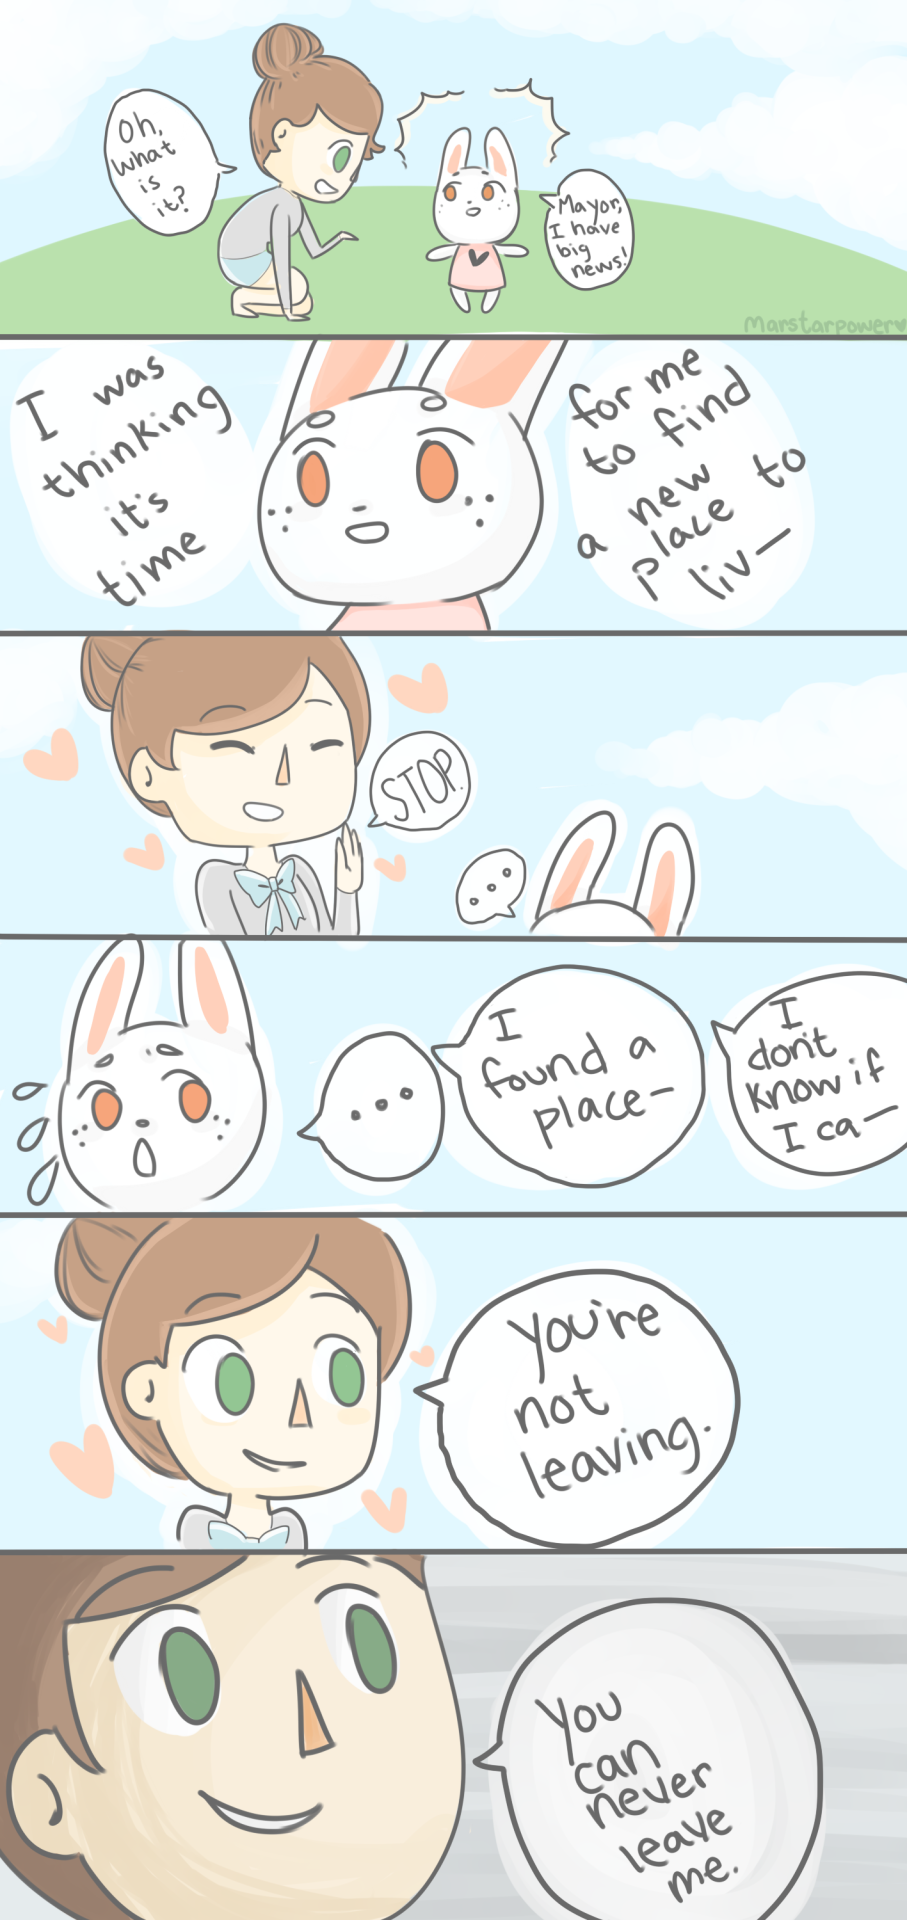 quick animal crossing comic, i guess lolthis is what would happen if i finally got a bunny in my town.